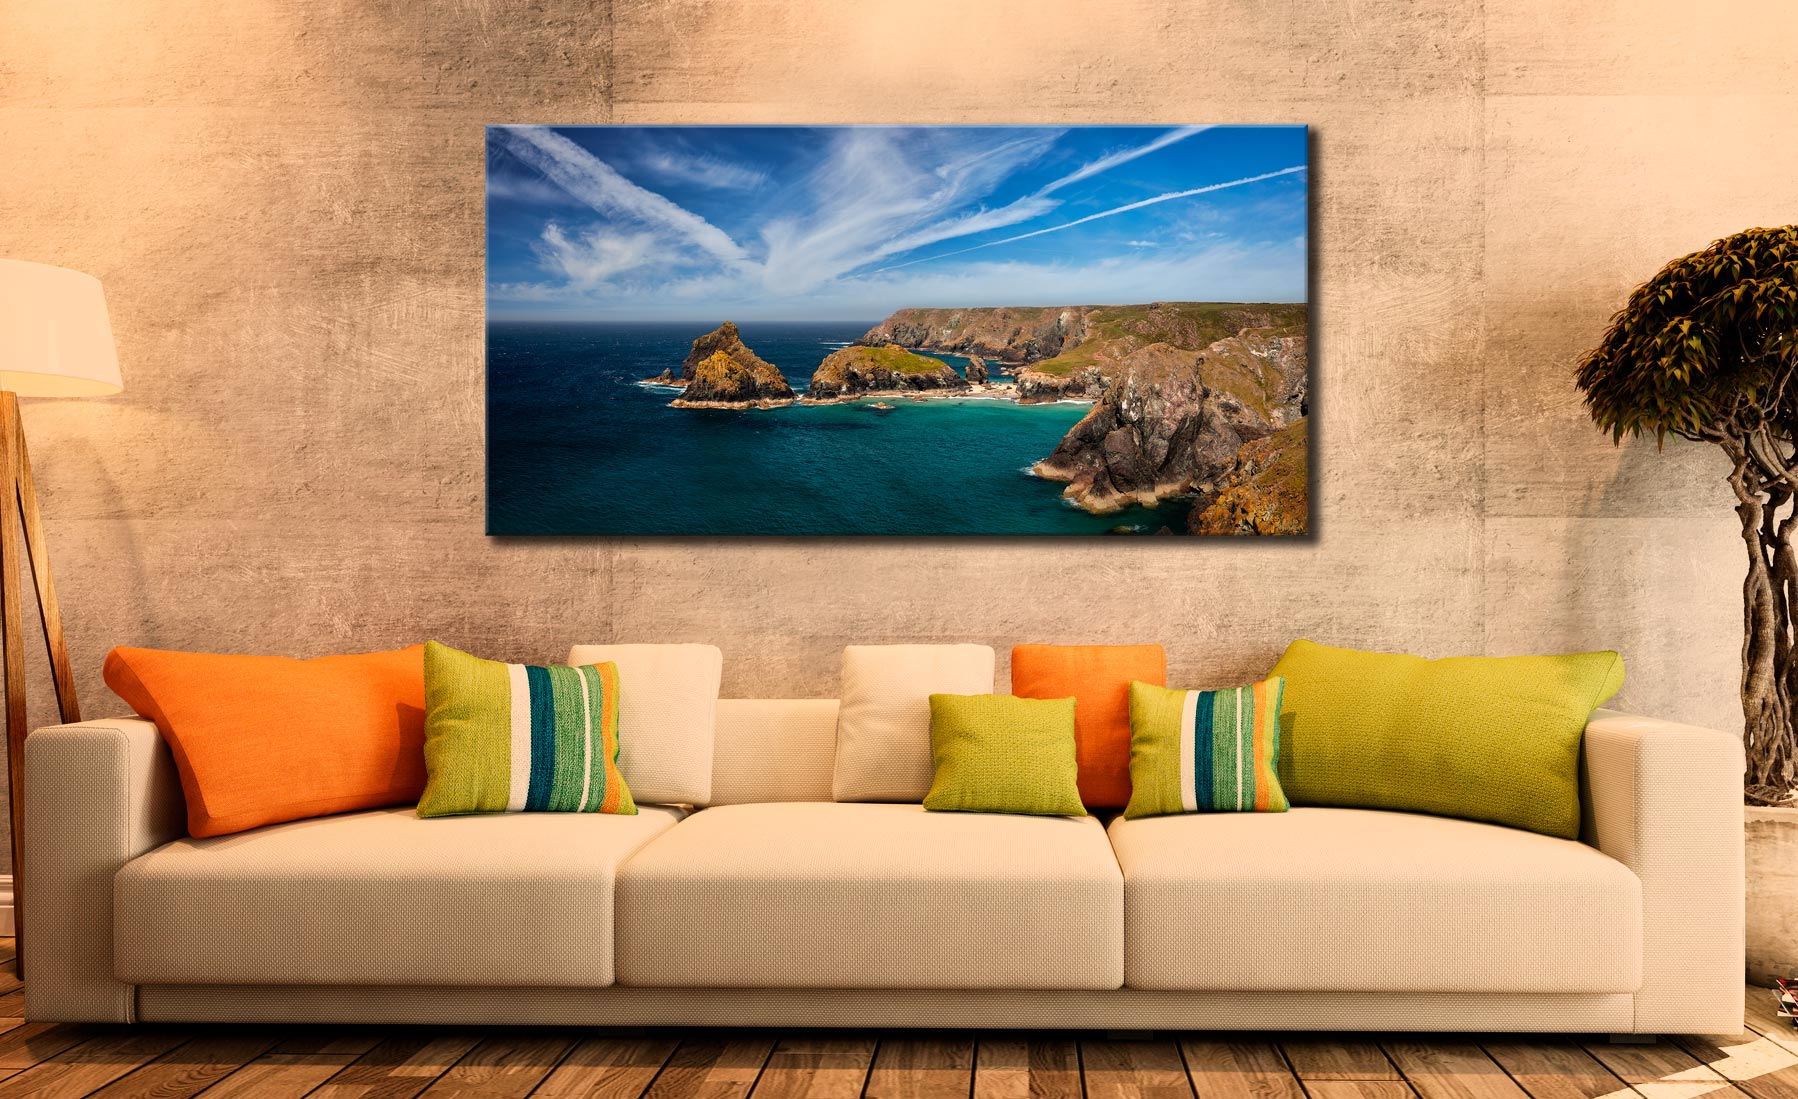 Green Ocean Kynance Cove - Canvas Print on Wall